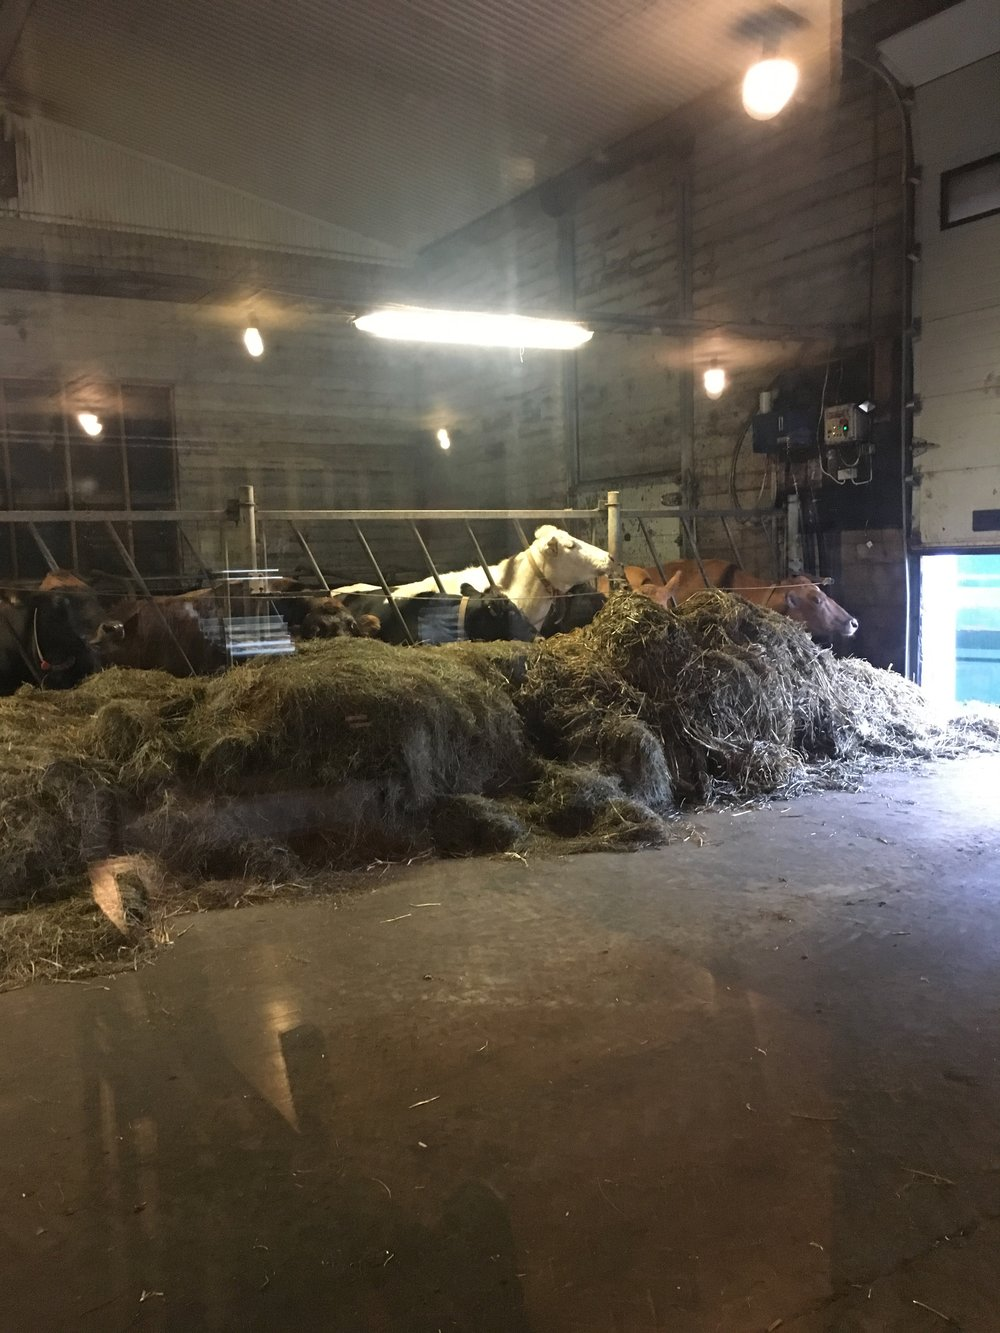 Cows in the barn - and oh, yes, that's where they sell the ice cream at Efstidalur dairy farm in Bláskógabyggð